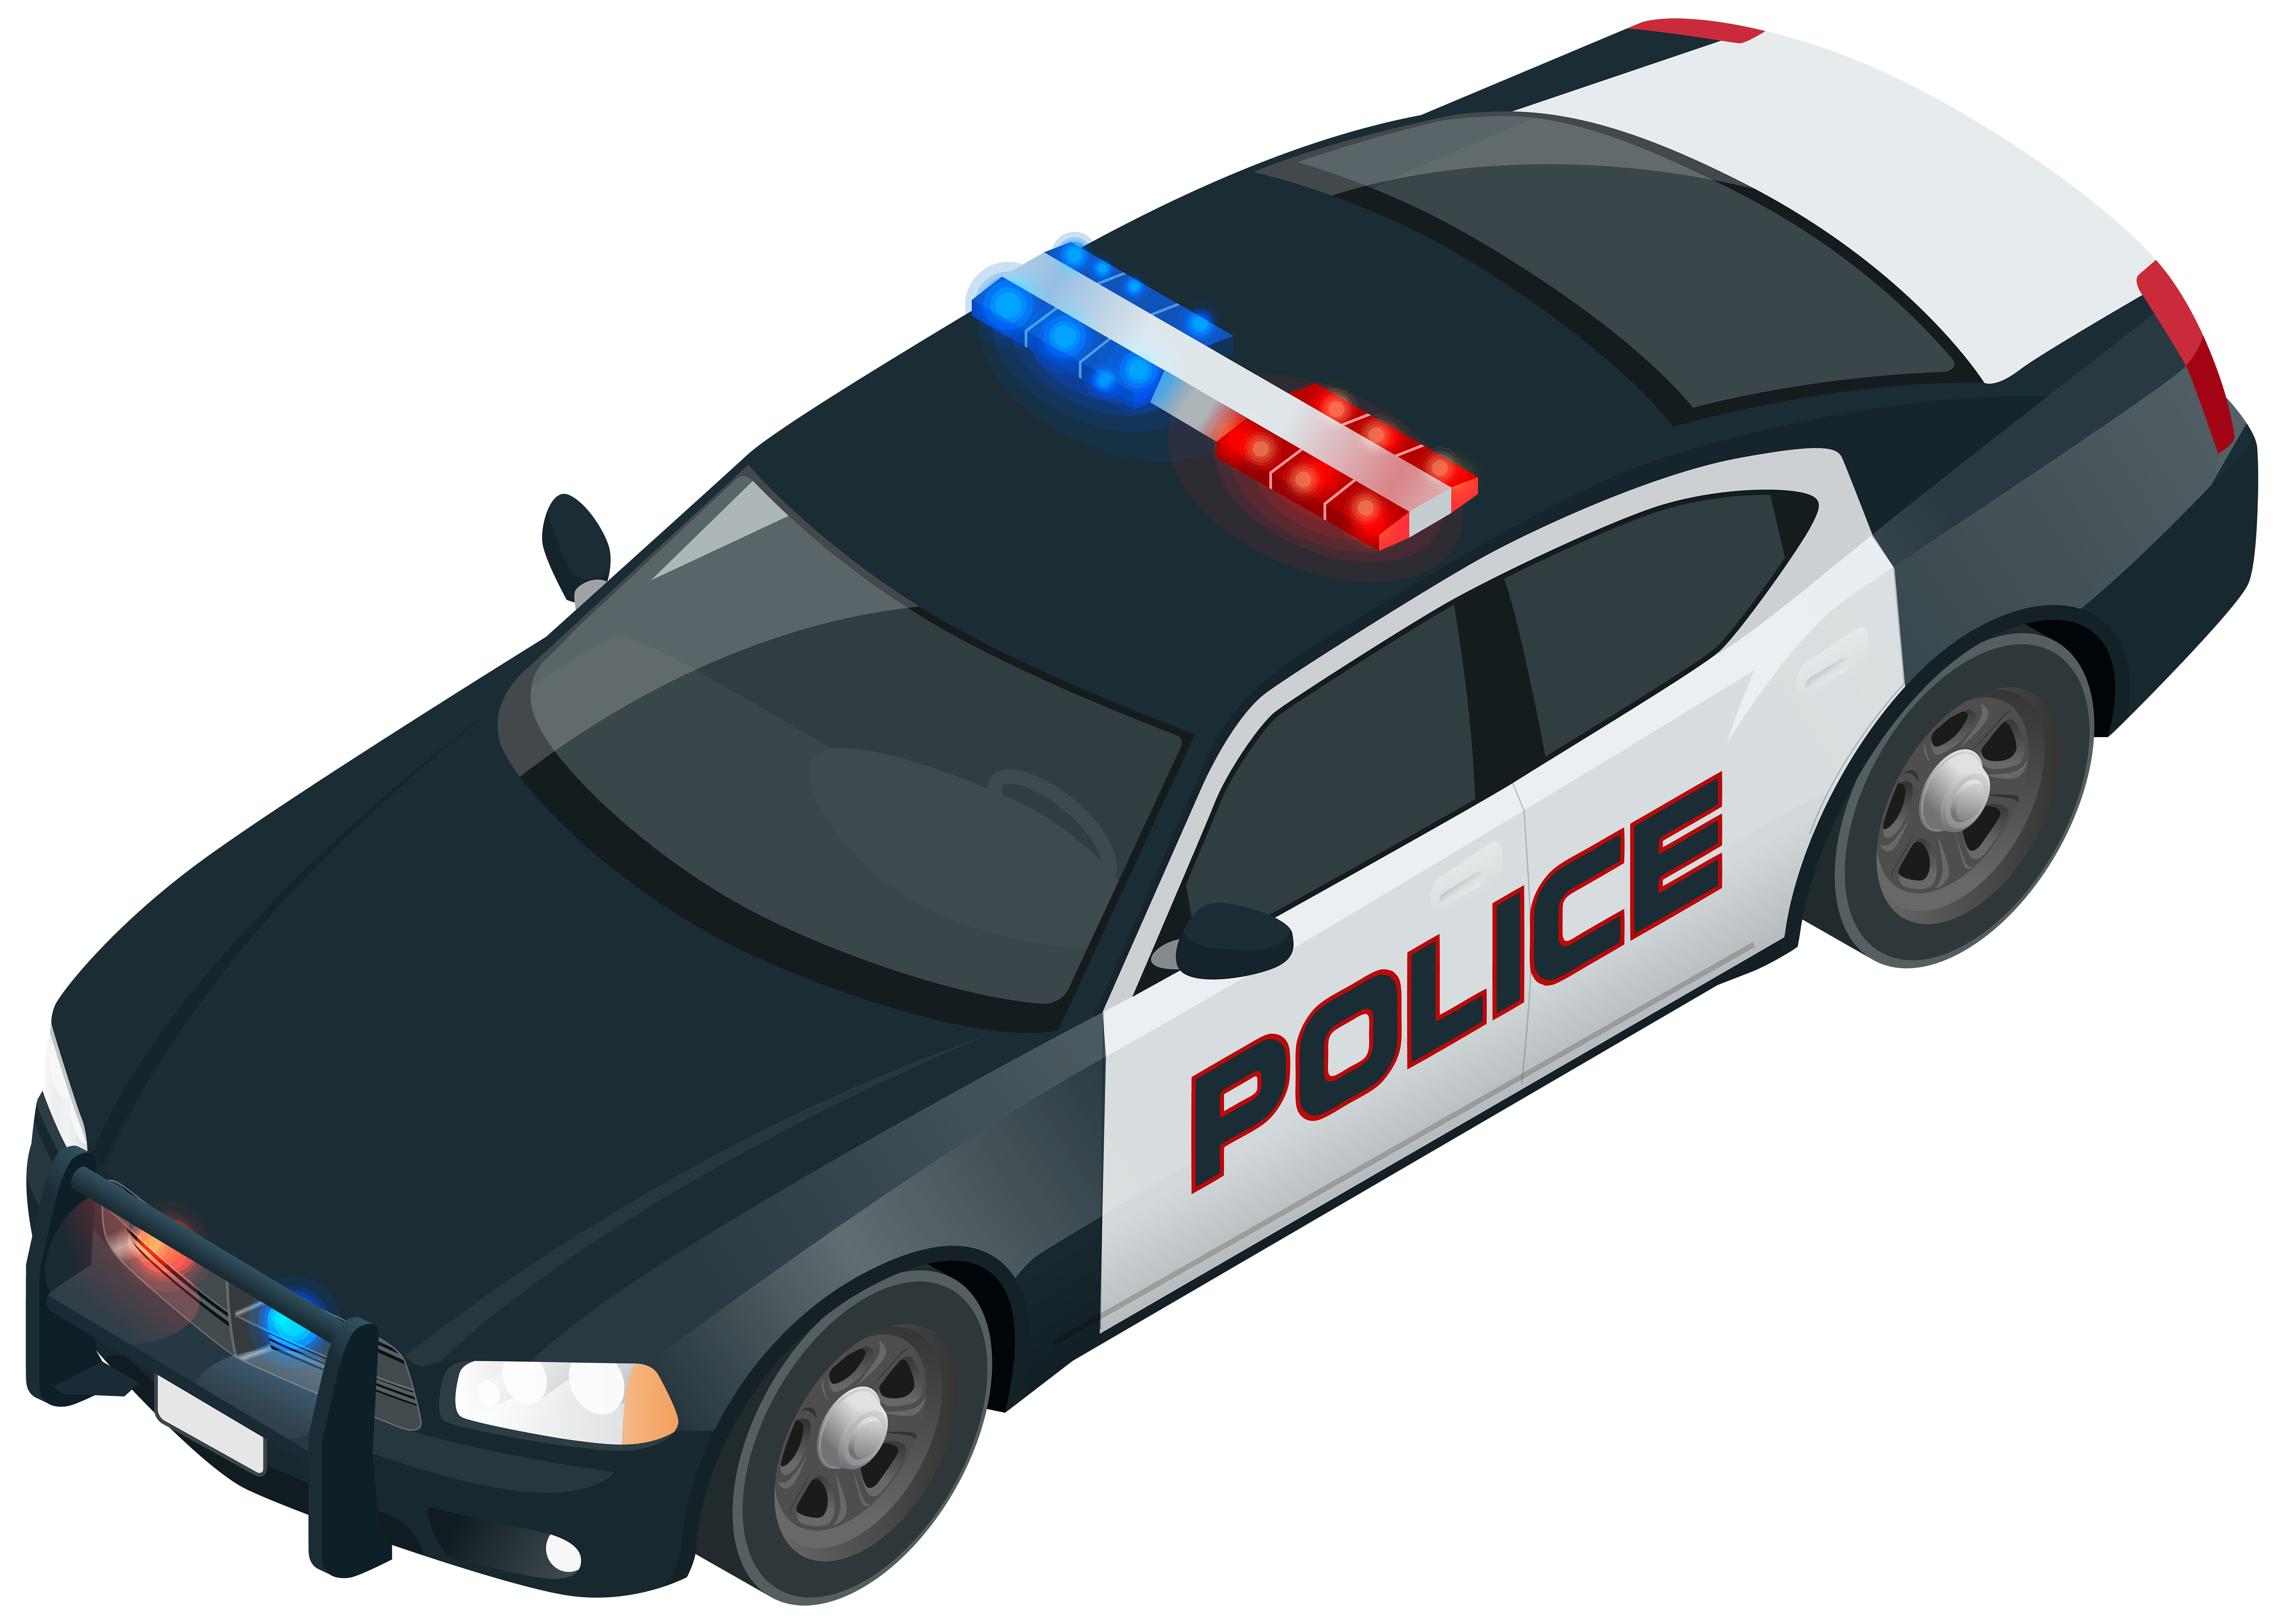 Police patrol car clipart graphic freeuse Police car Police officer - Police Car PNG Clip Art Image 8000*5689 ... graphic freeuse